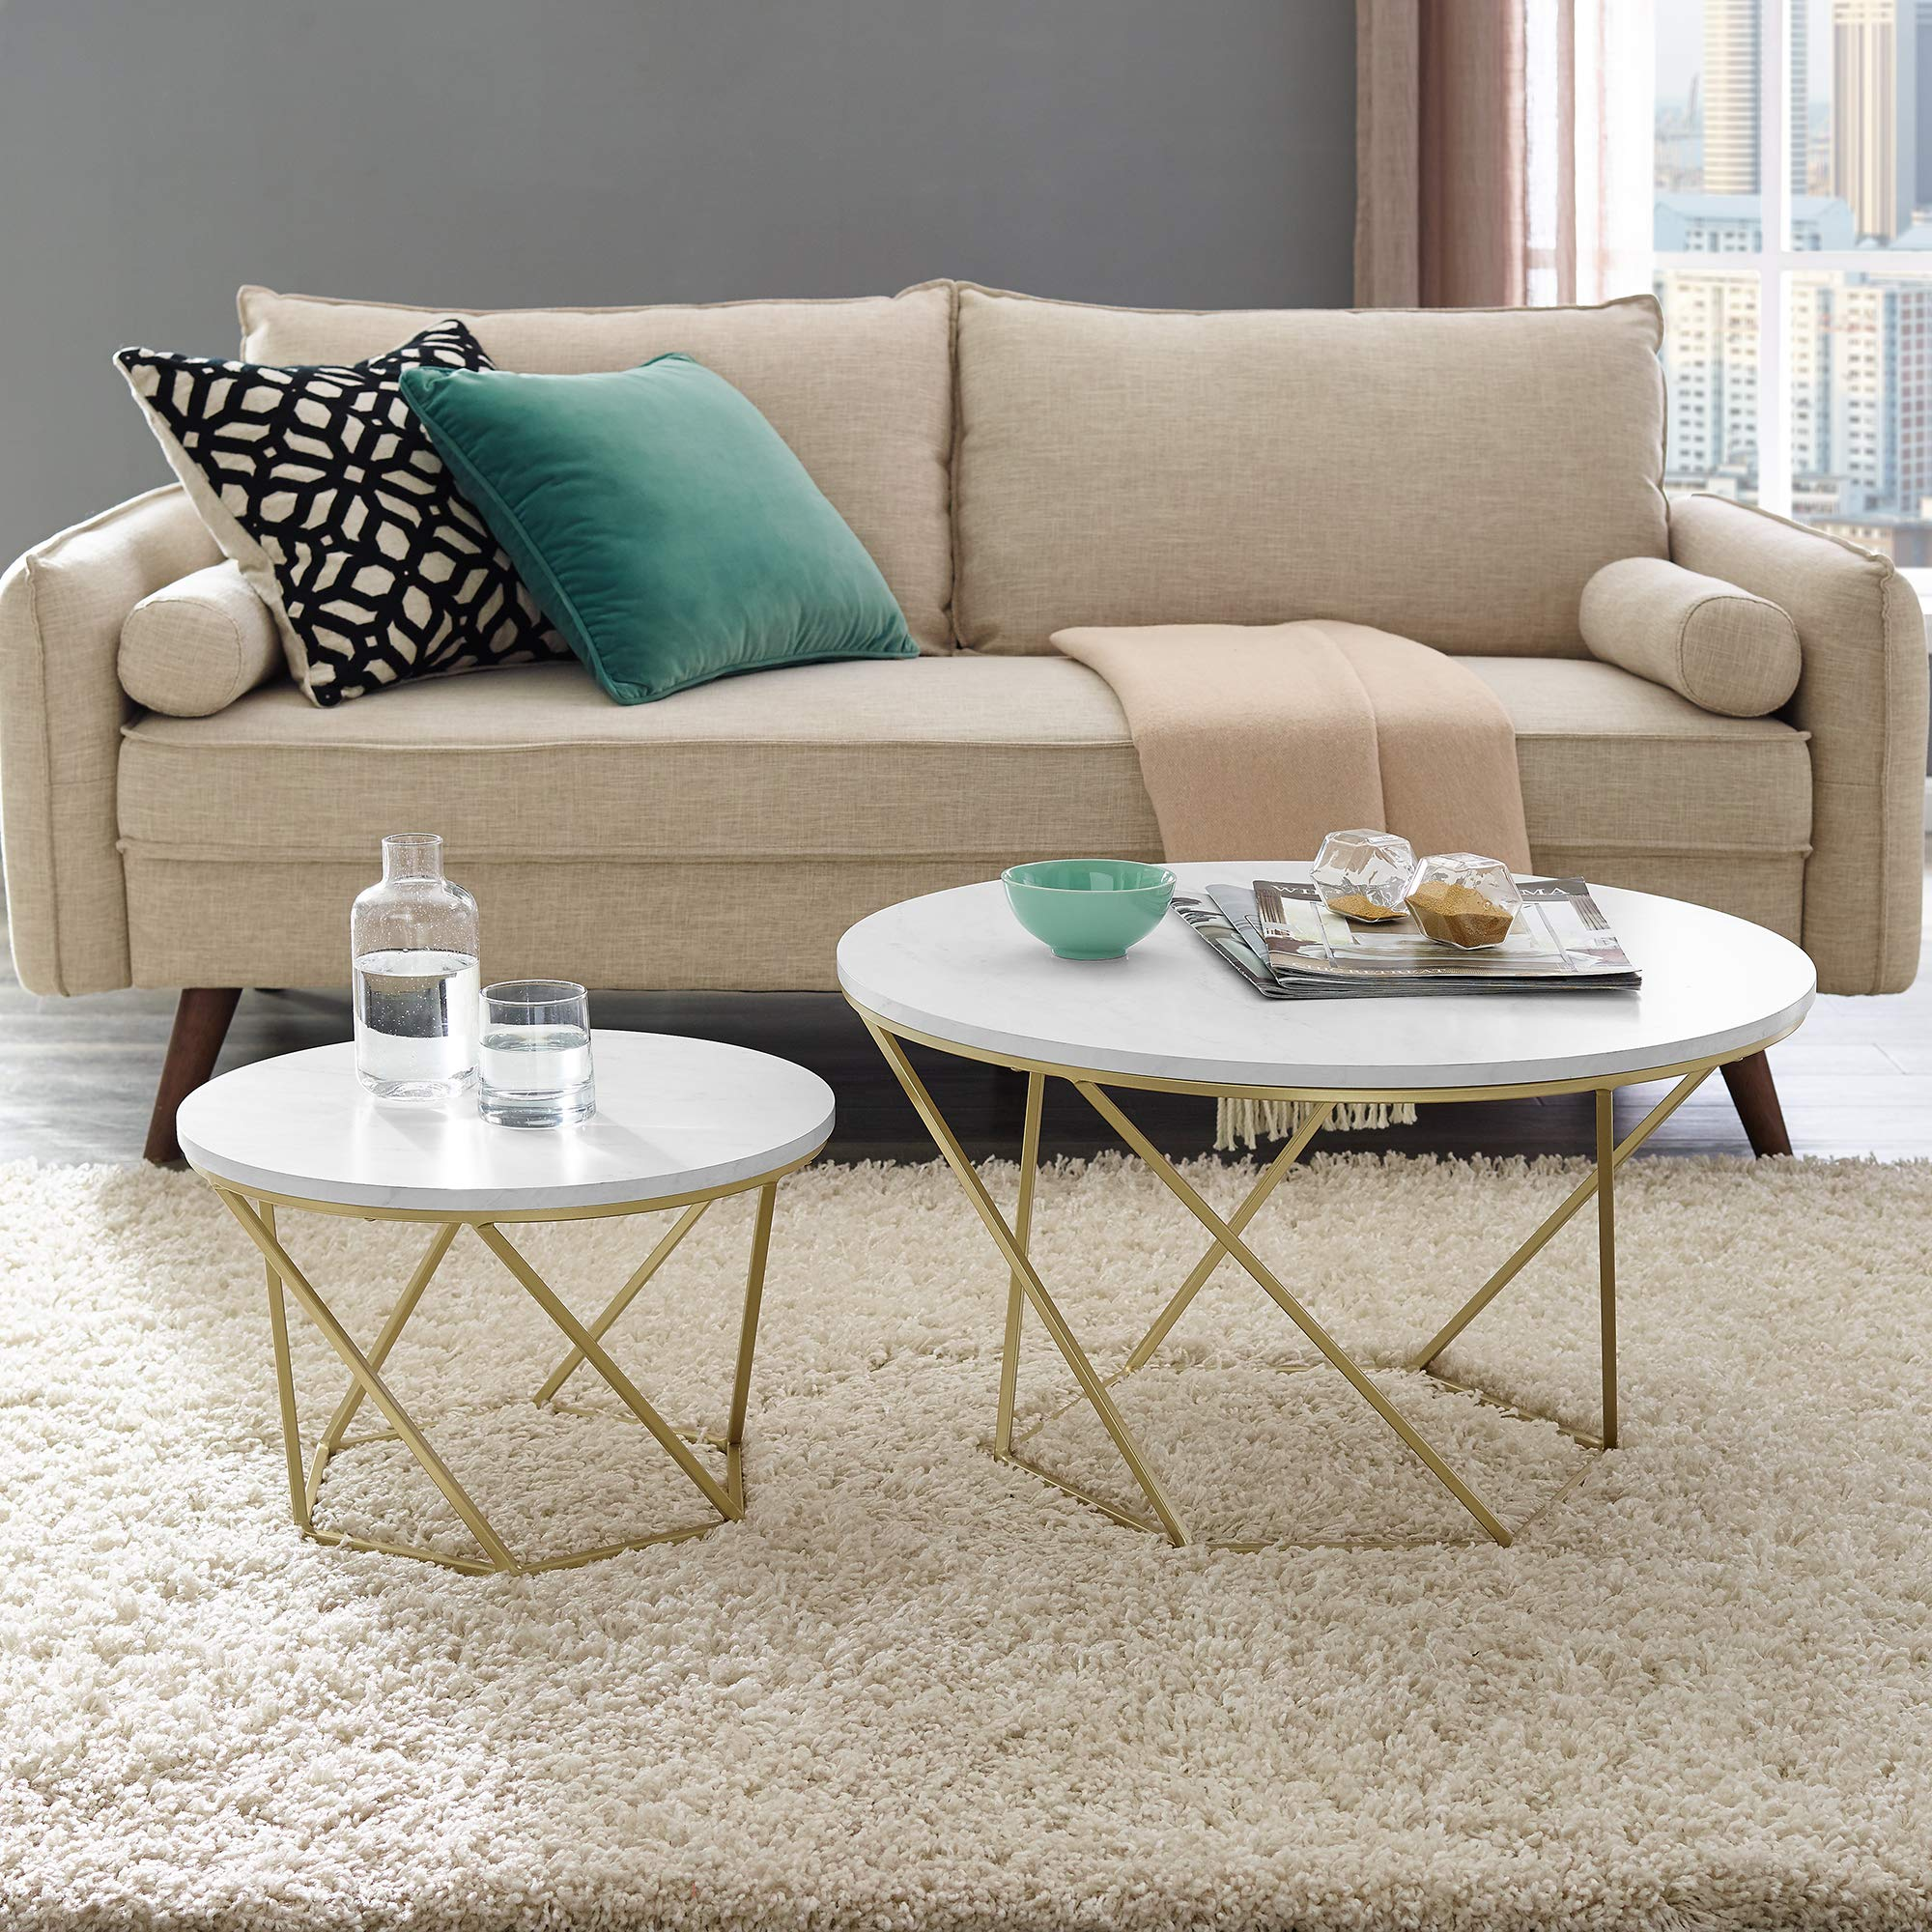 WE Furniture AZF28CLRGMG Nesting Tables Set of 2 Faux White Marble/Gold